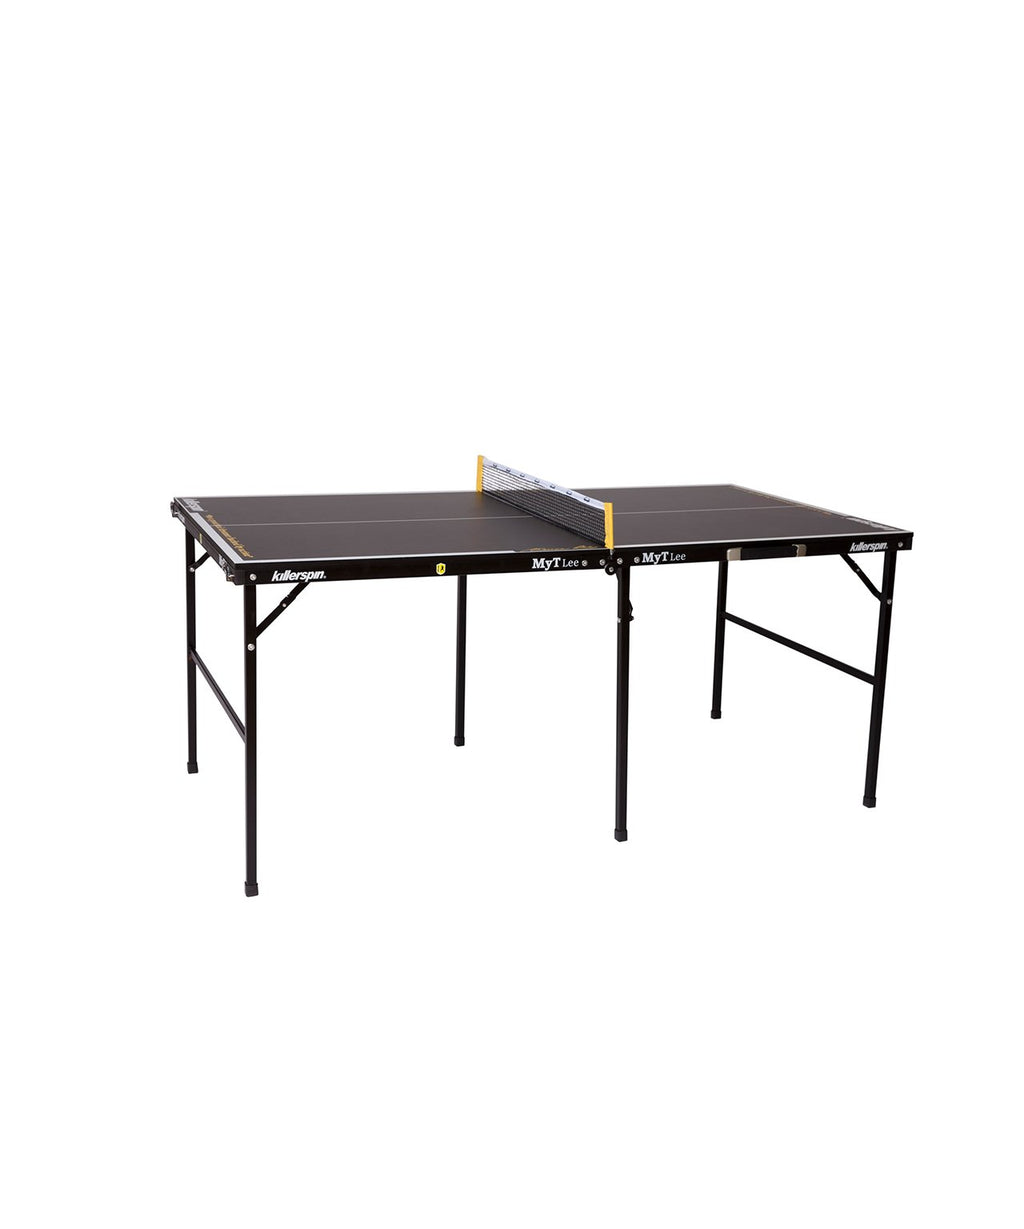 MyT Lee Table Tennis Table in Black